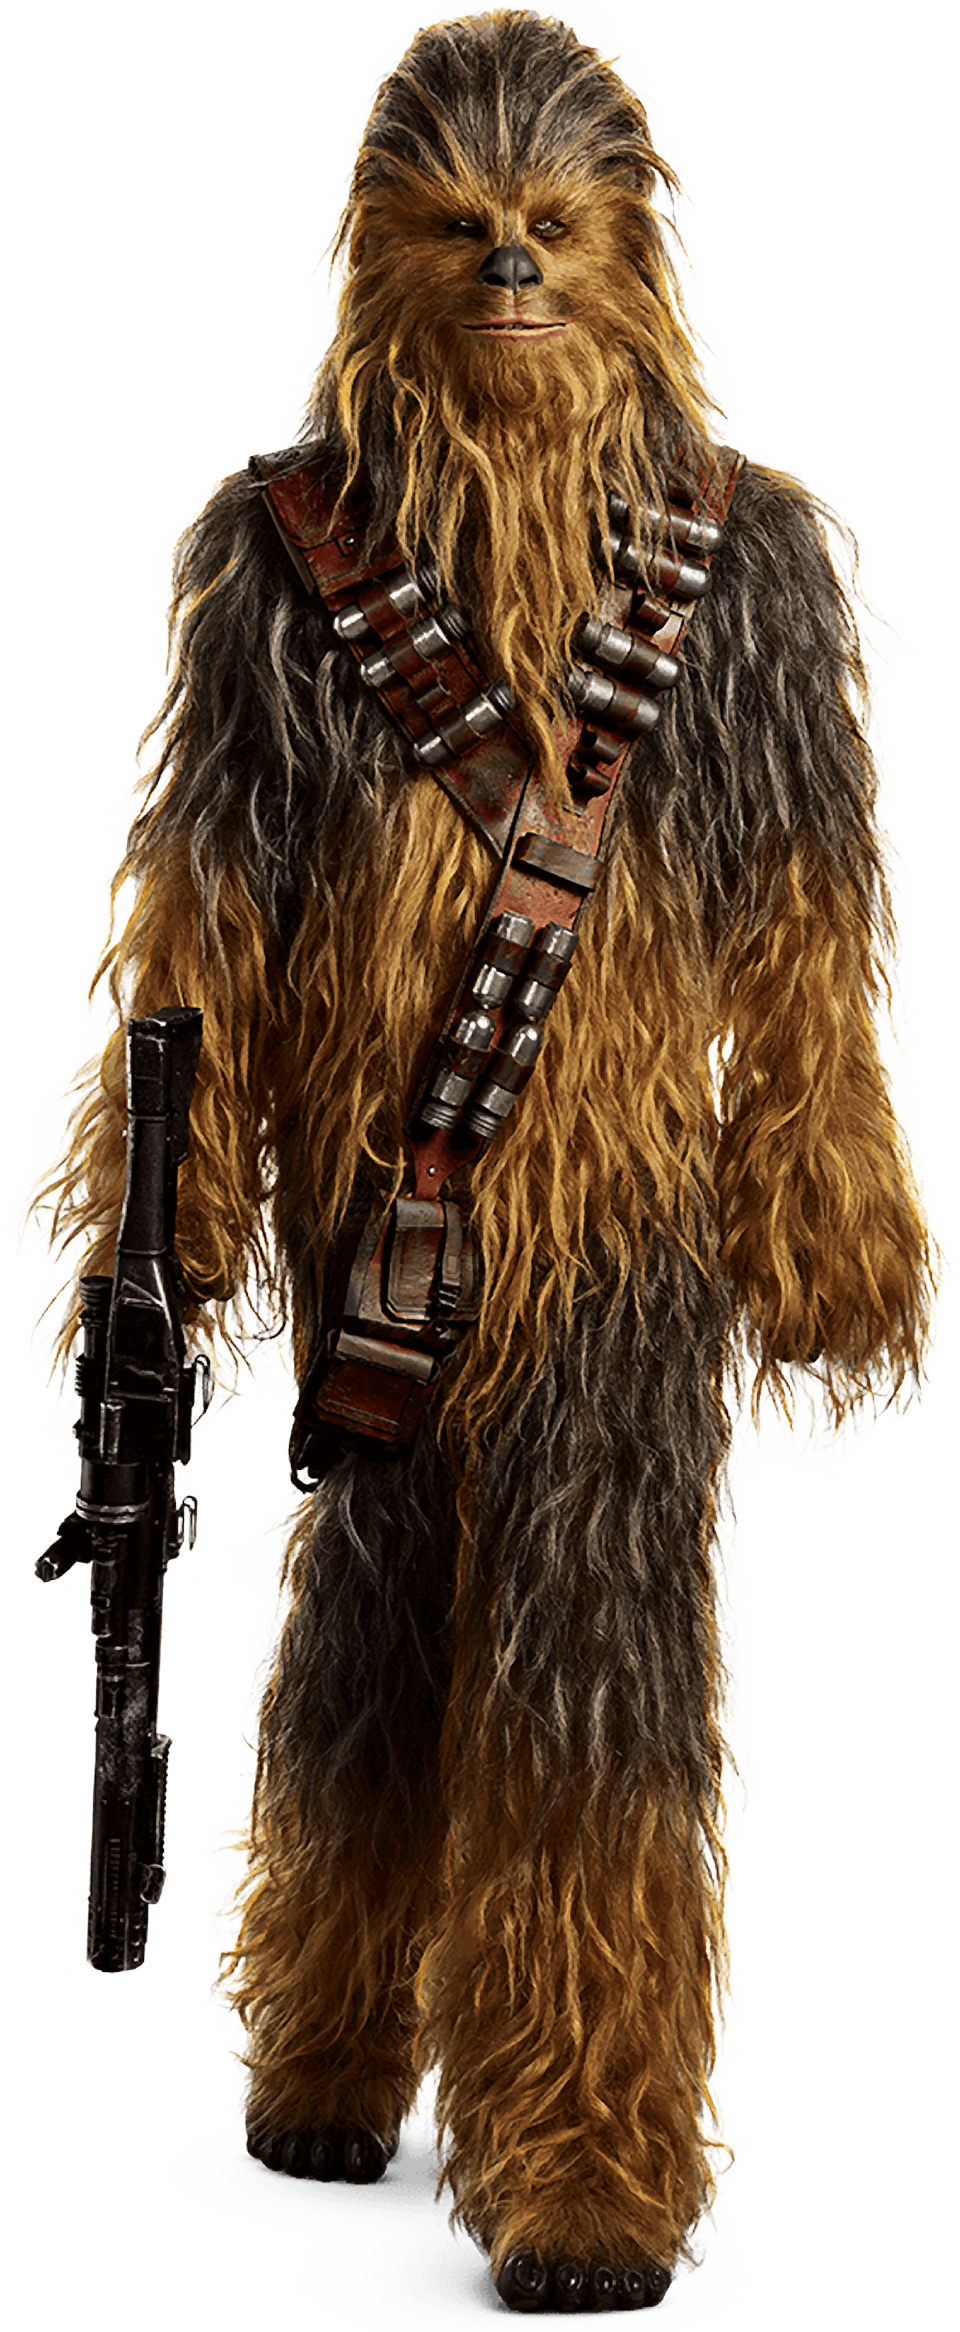 characters-of-solo-a-star-wars-story-the-mighty-chewbacca-transparent-background-png.png